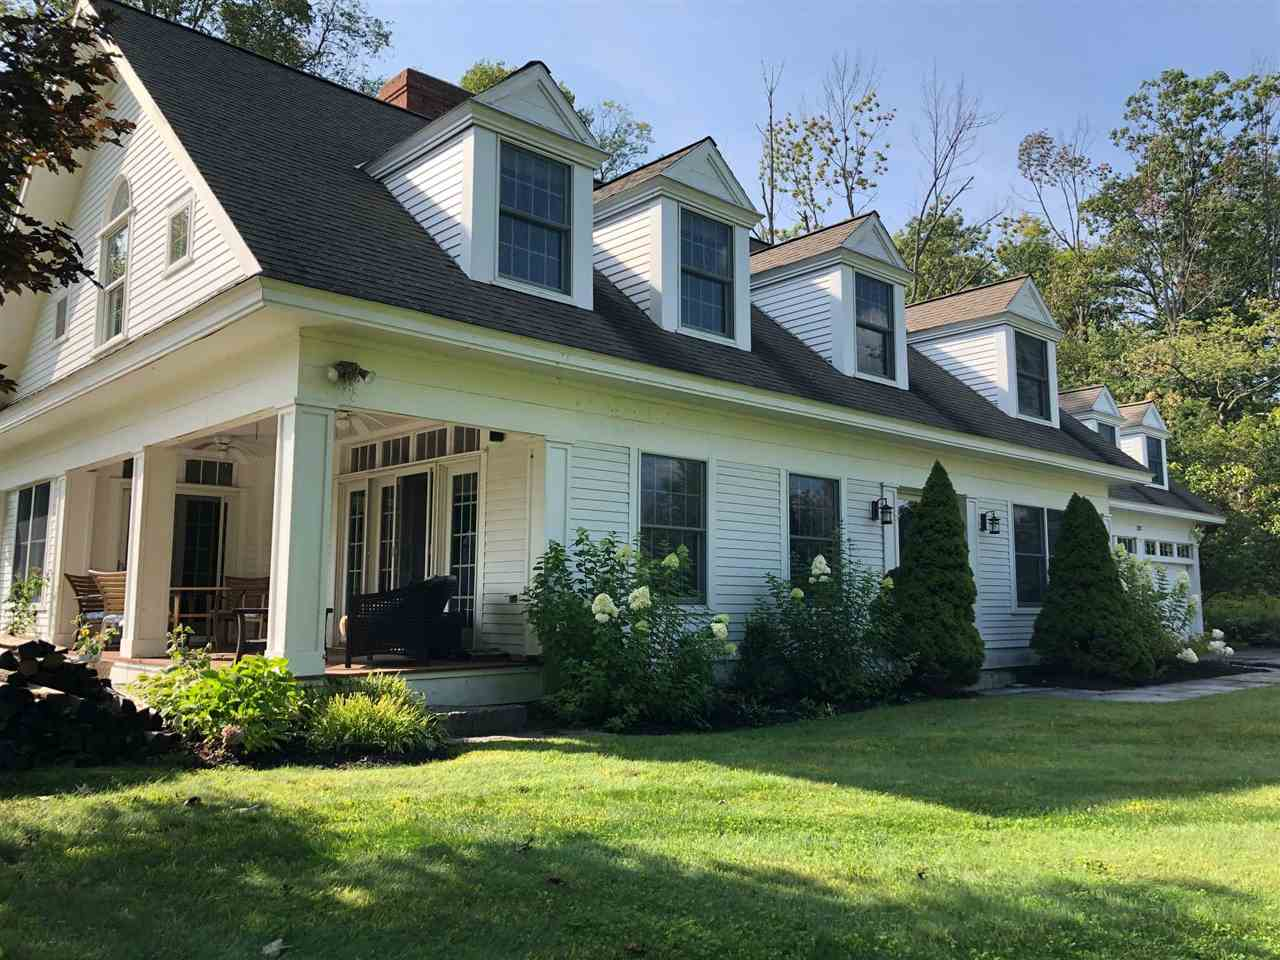 MLS 4743508: 327 Dutton Hill Road, Norwich VT